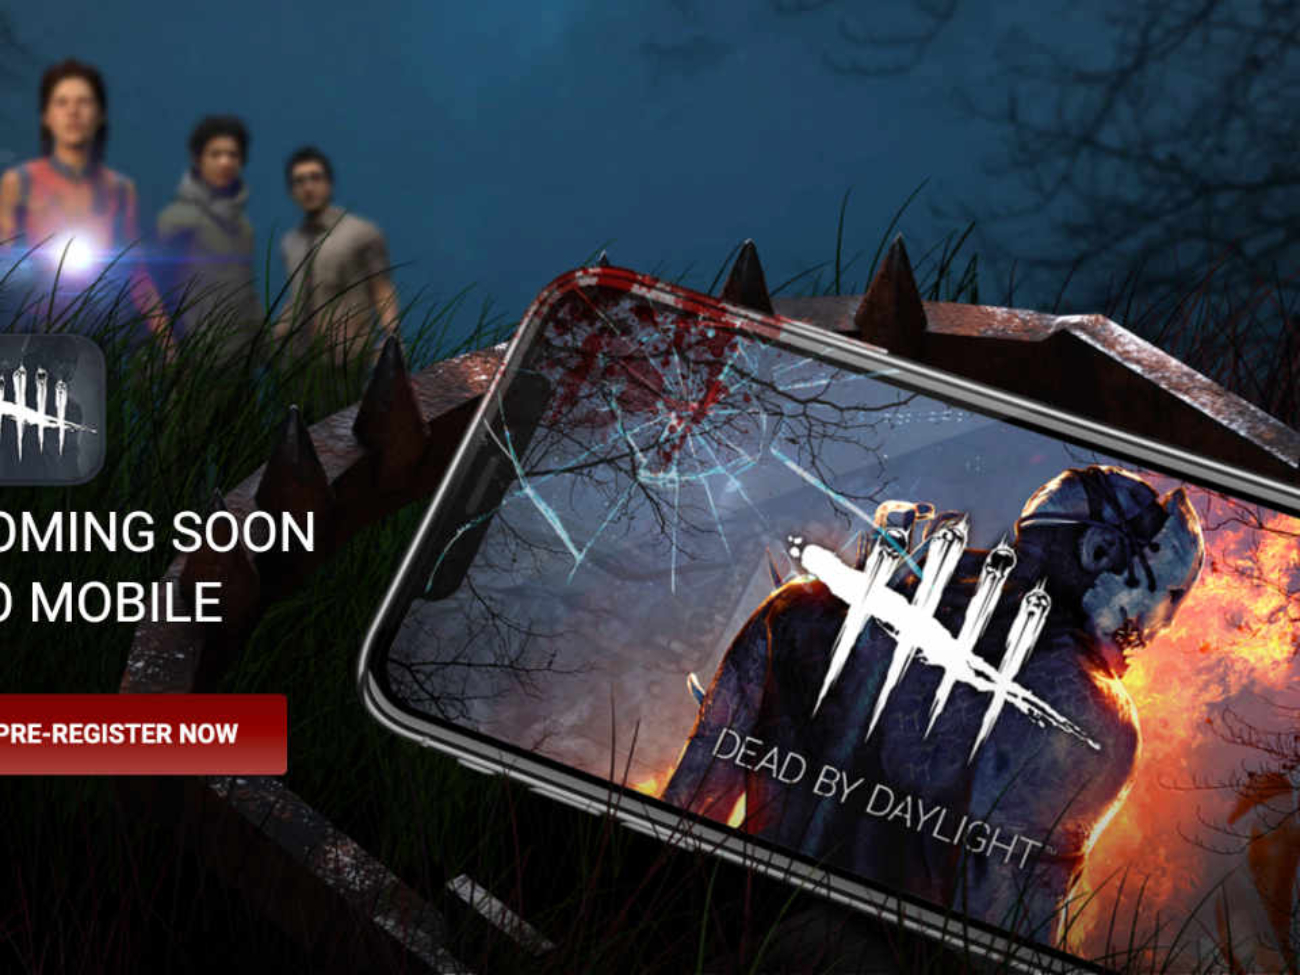 dead-by-daylight-mobile-coming-soon